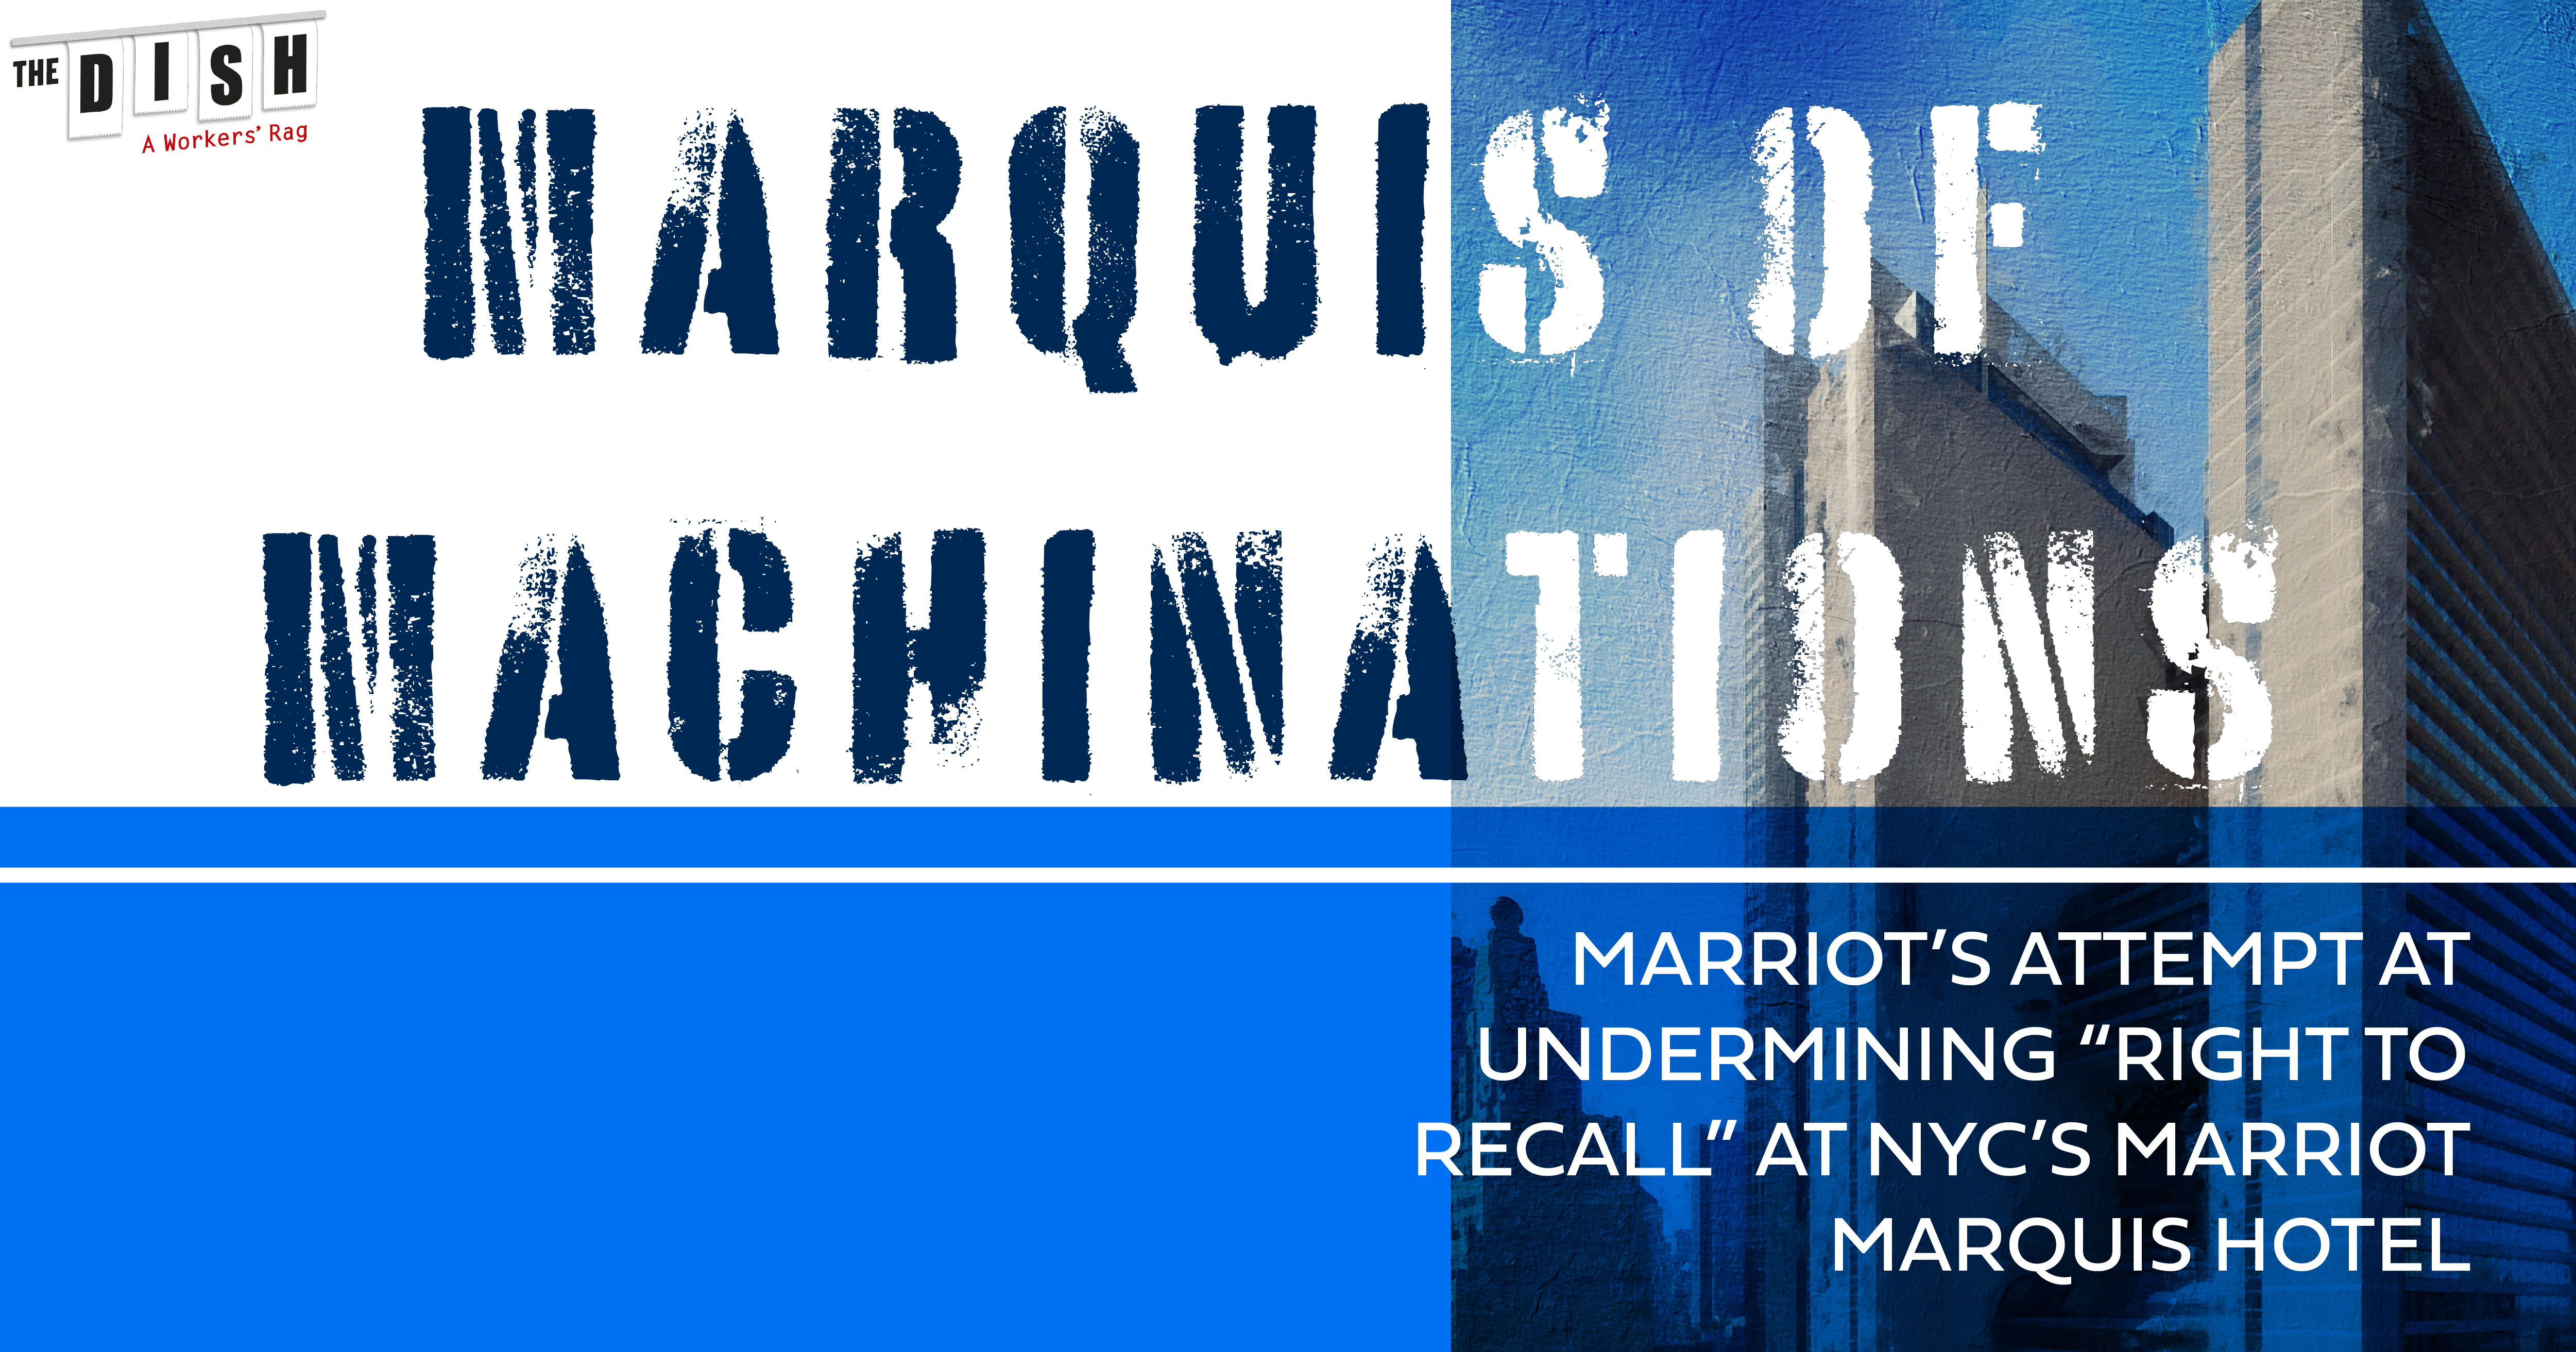 """Illustration of the Marriot Marquis in New York City with graphic text that reads """"Marquis of Machinations Marriot's Attempt at Undermining 'Right To Recall' At NYC's Marriot Marquis Hotel"""""""